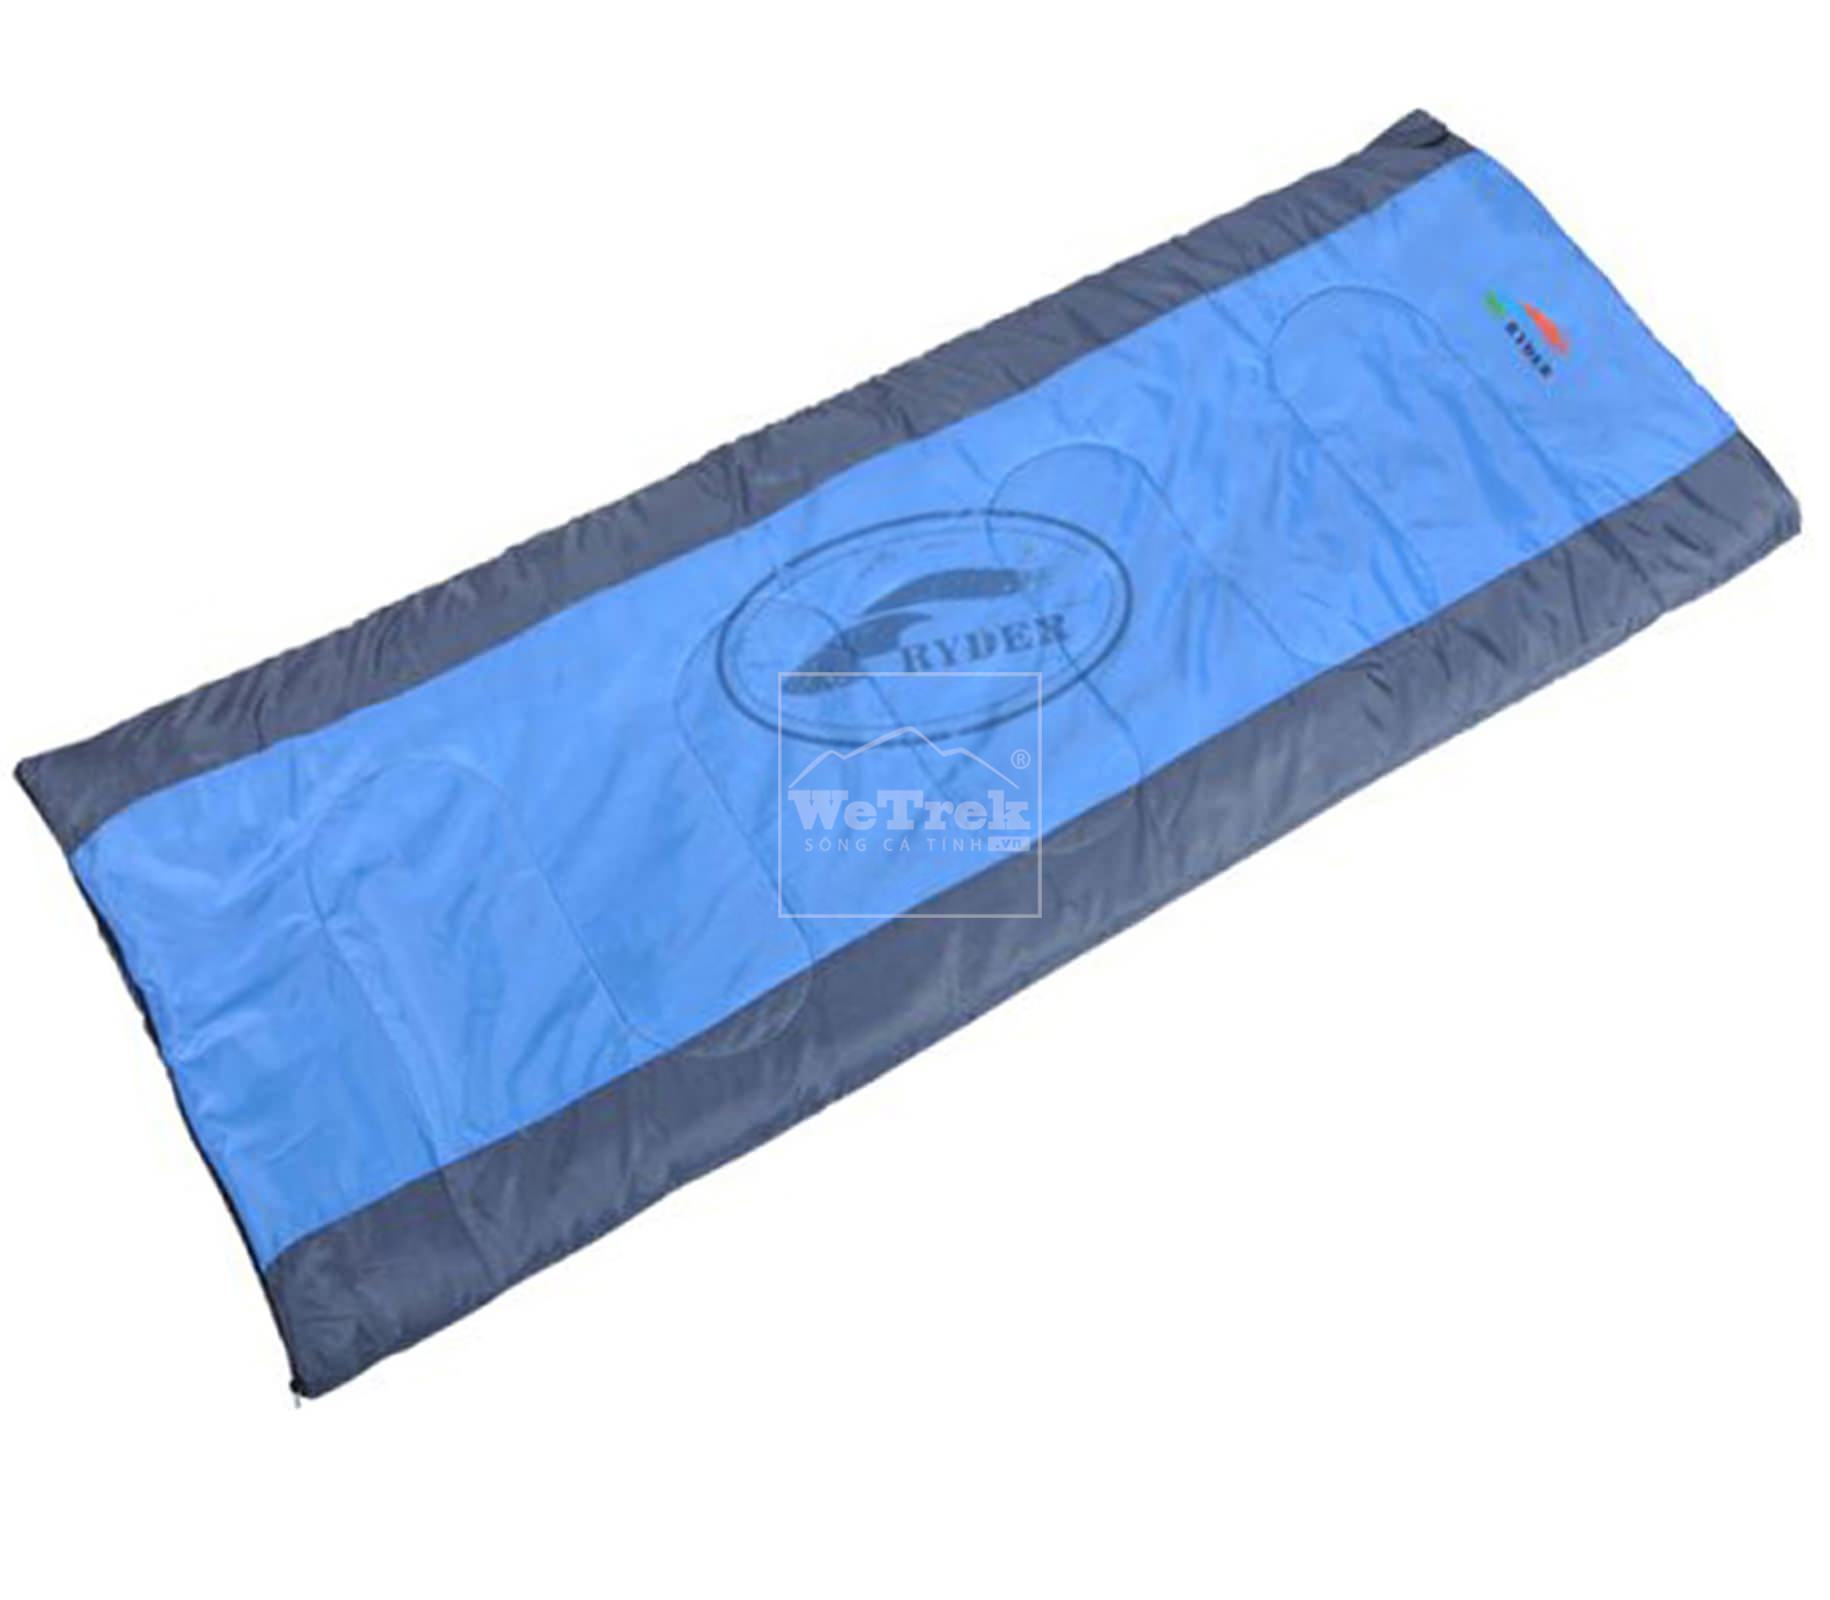 Tui-ngu-Ryder-Envelope-Sleeping-Bag-D1001-Blue-1211_HasThumb.jpg